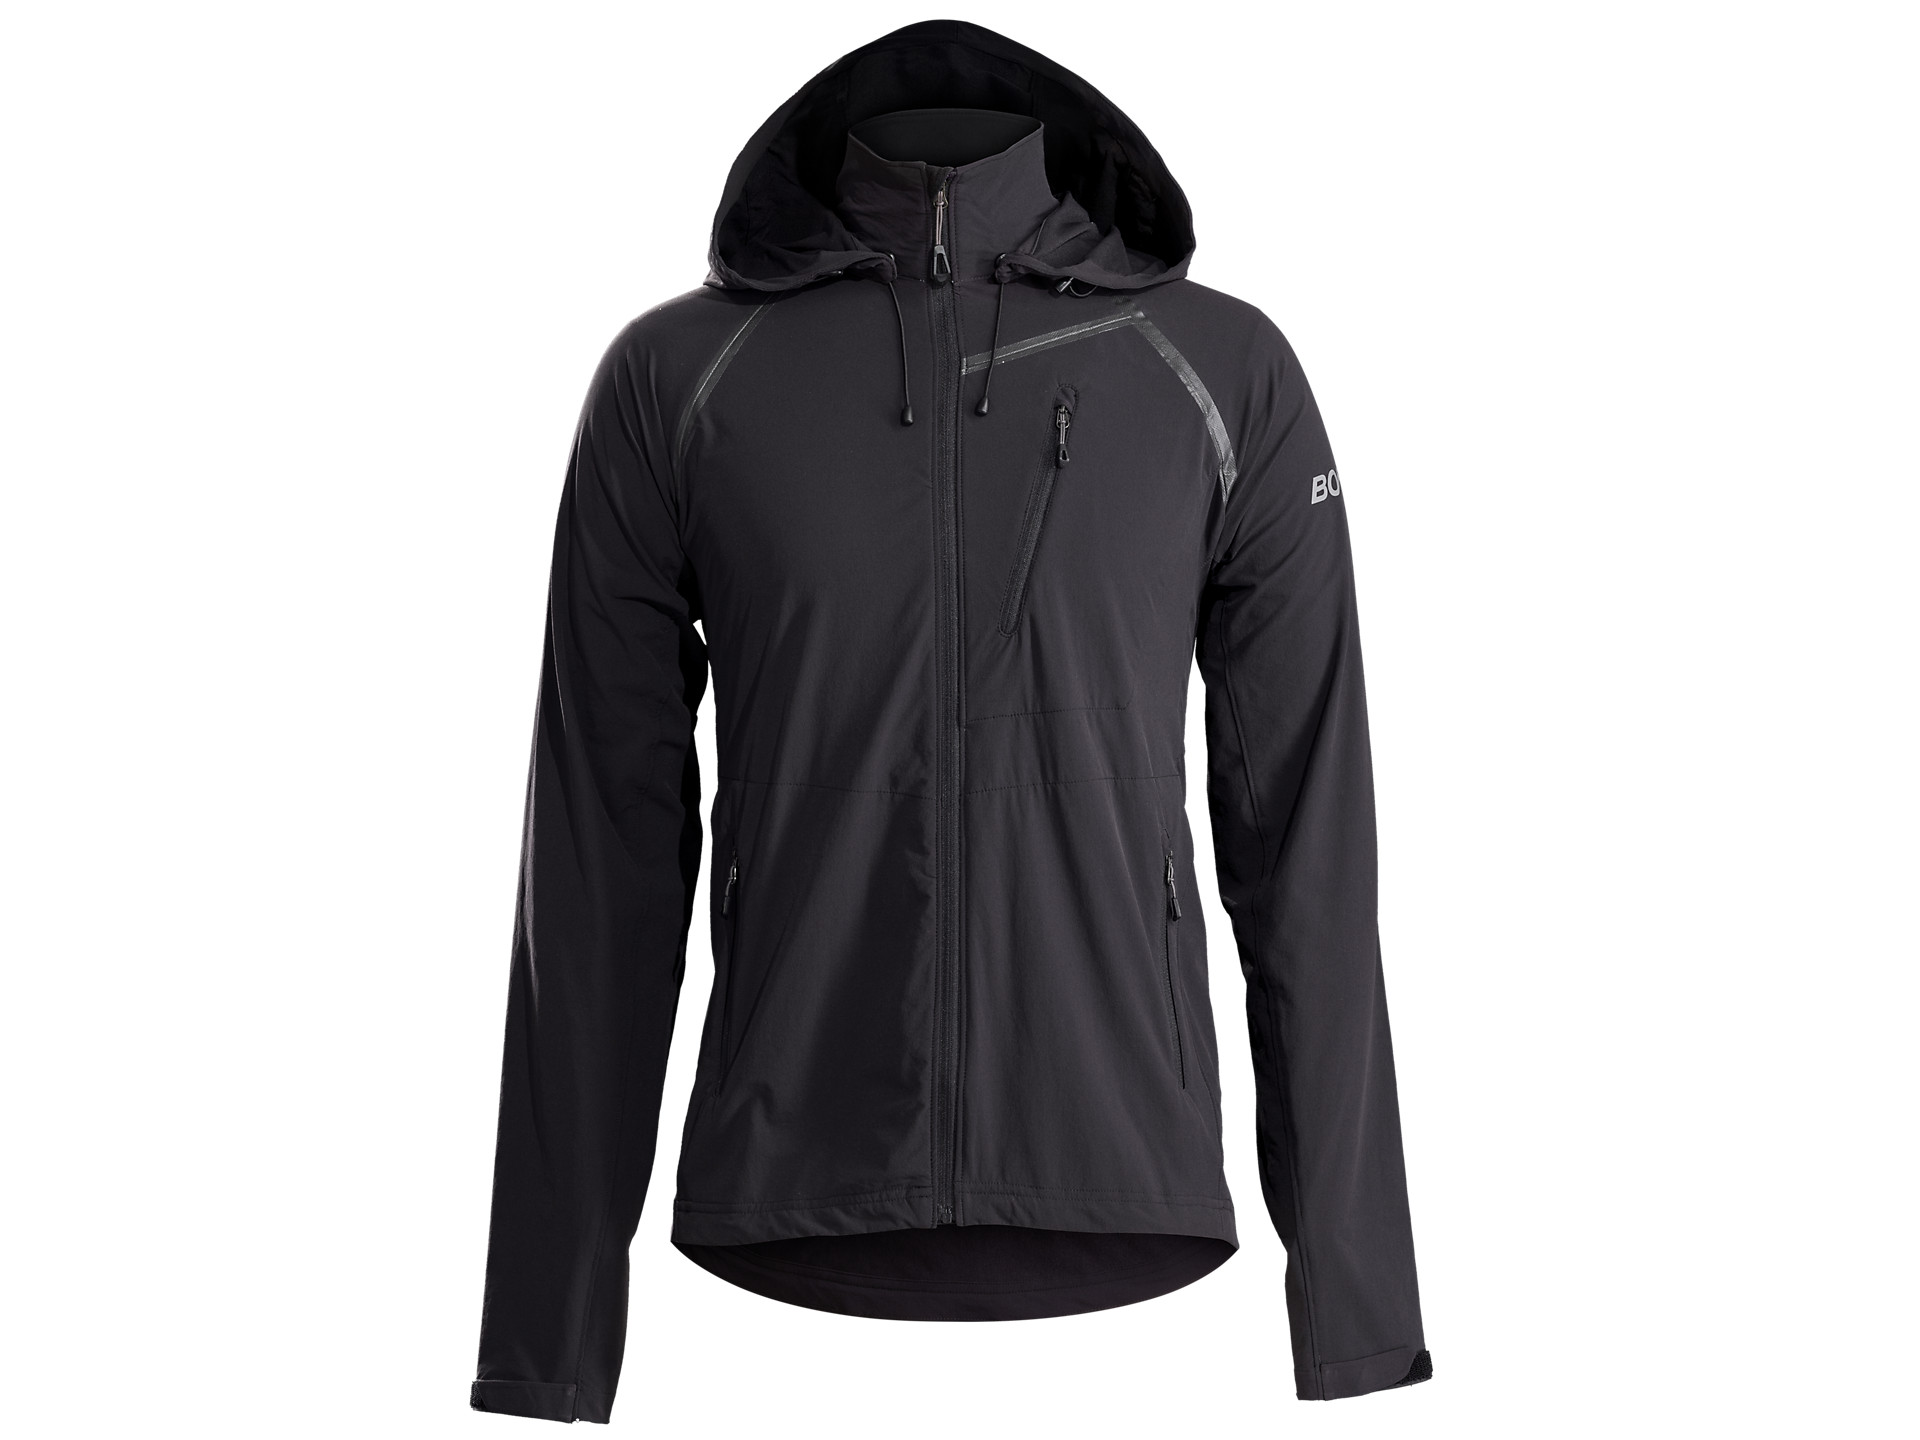 Bontrager Foray Softshell Cycling Jacket 4b2bac3d6